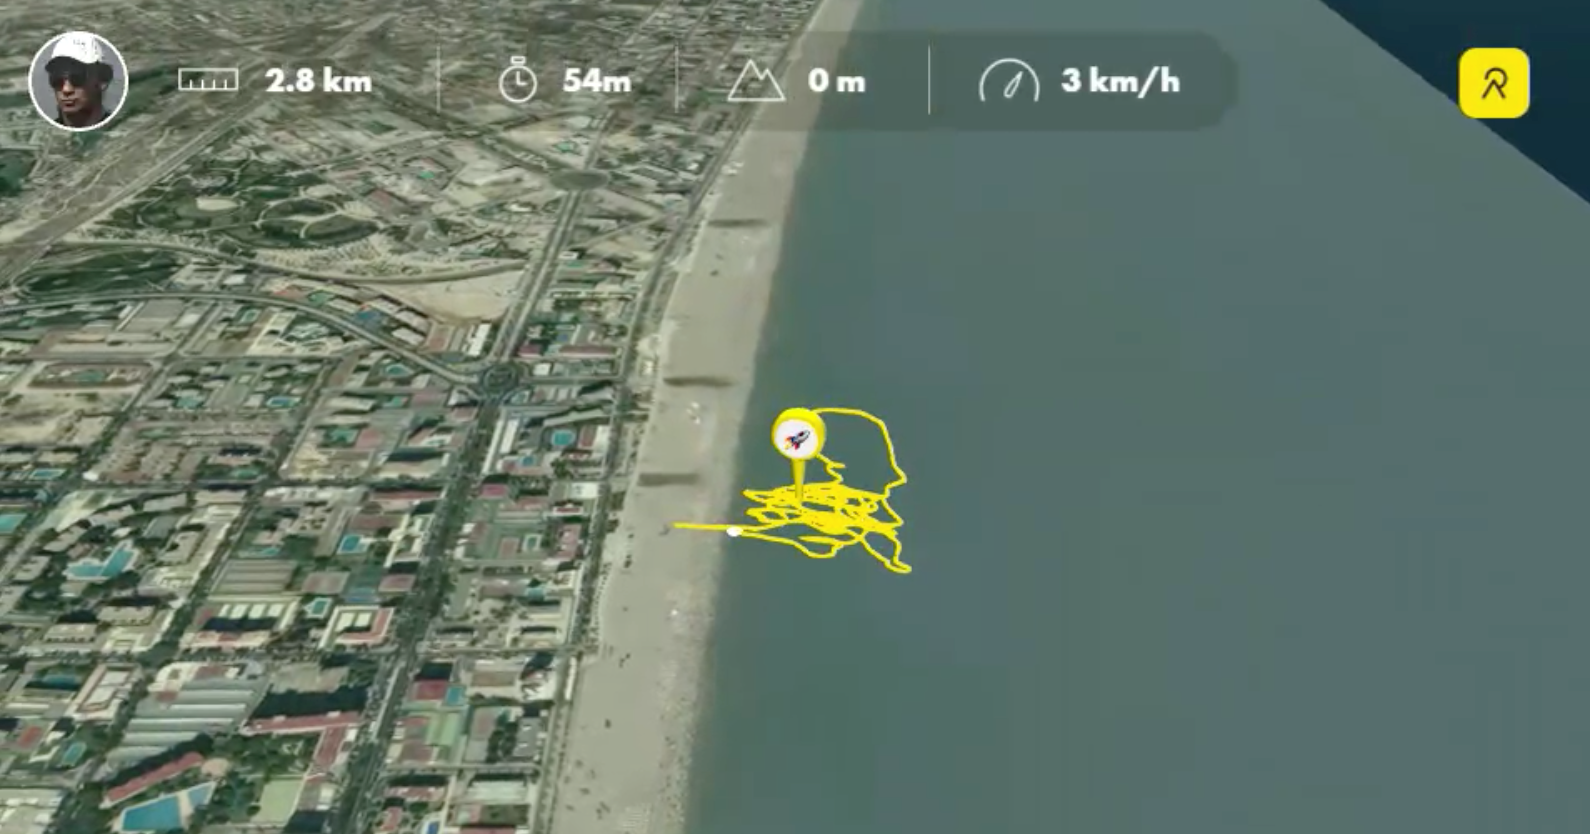 Relive photo of surfer tracking surf trip